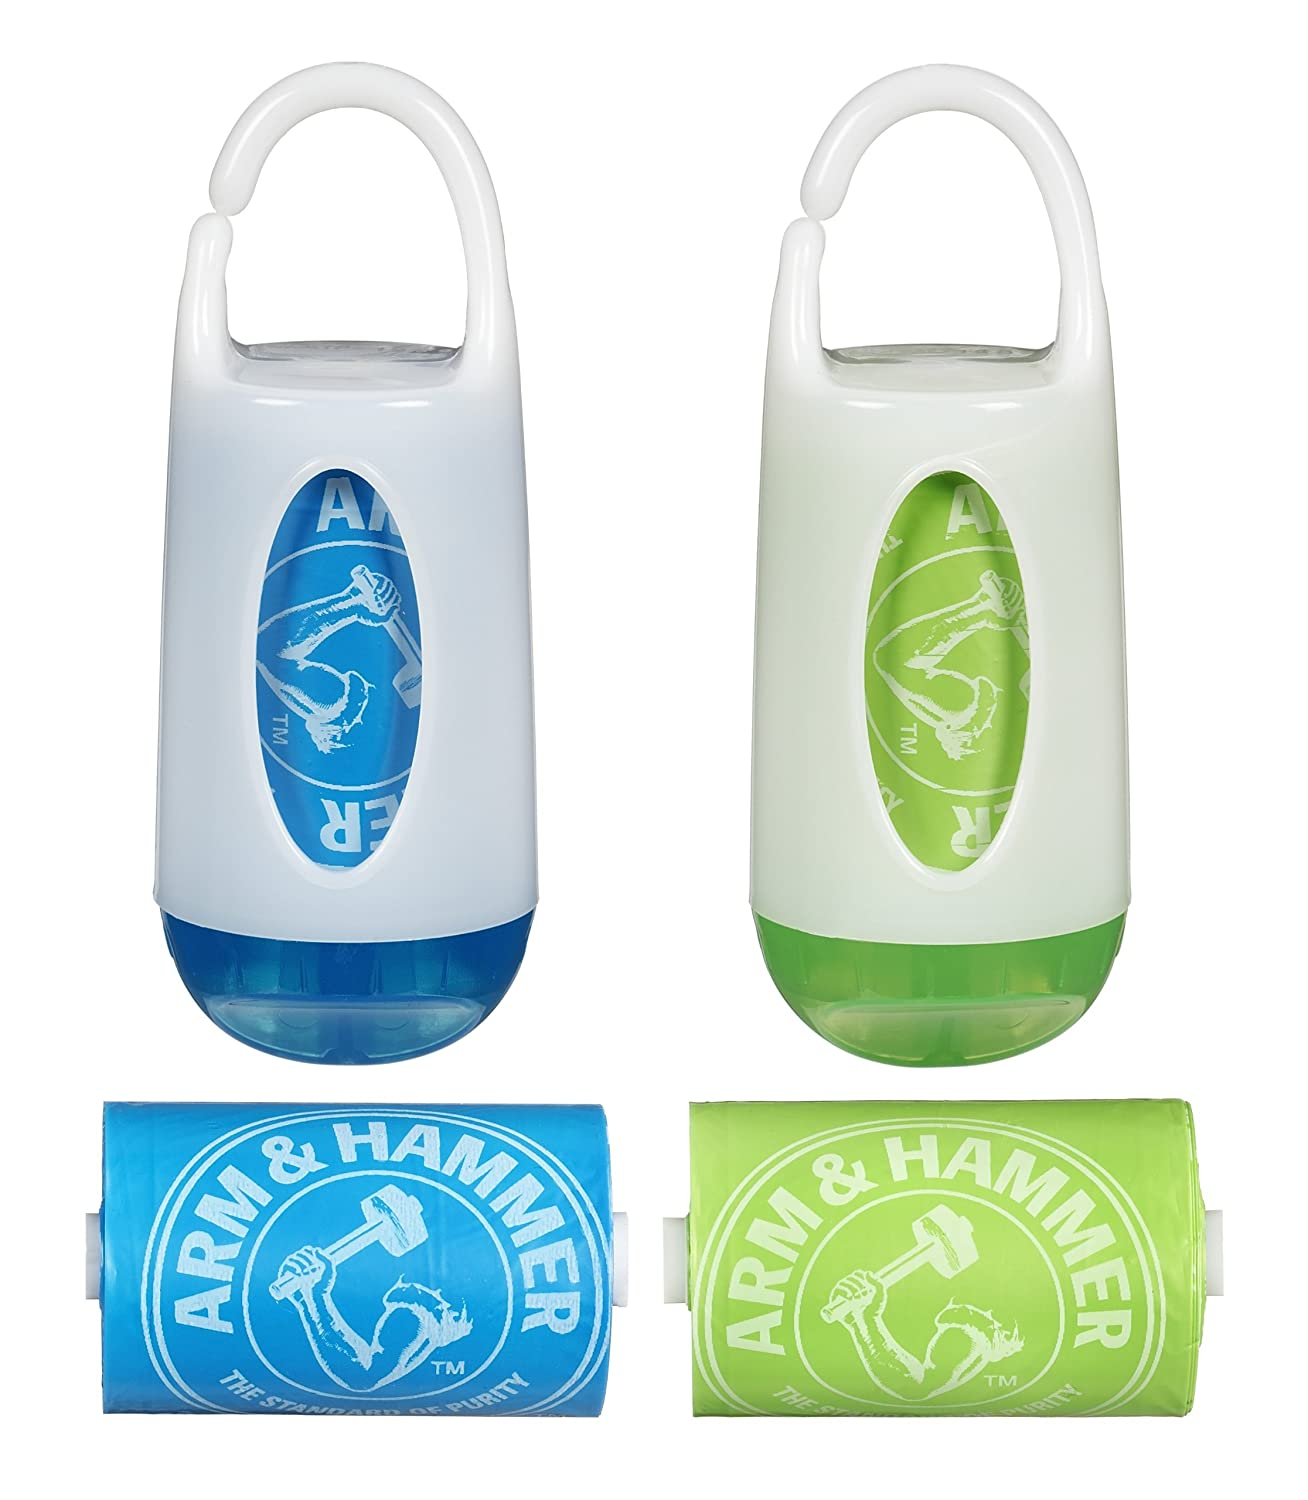 Amazon.com : Arm & HammerDiaper Bolsa dispensador y Bolsas ...